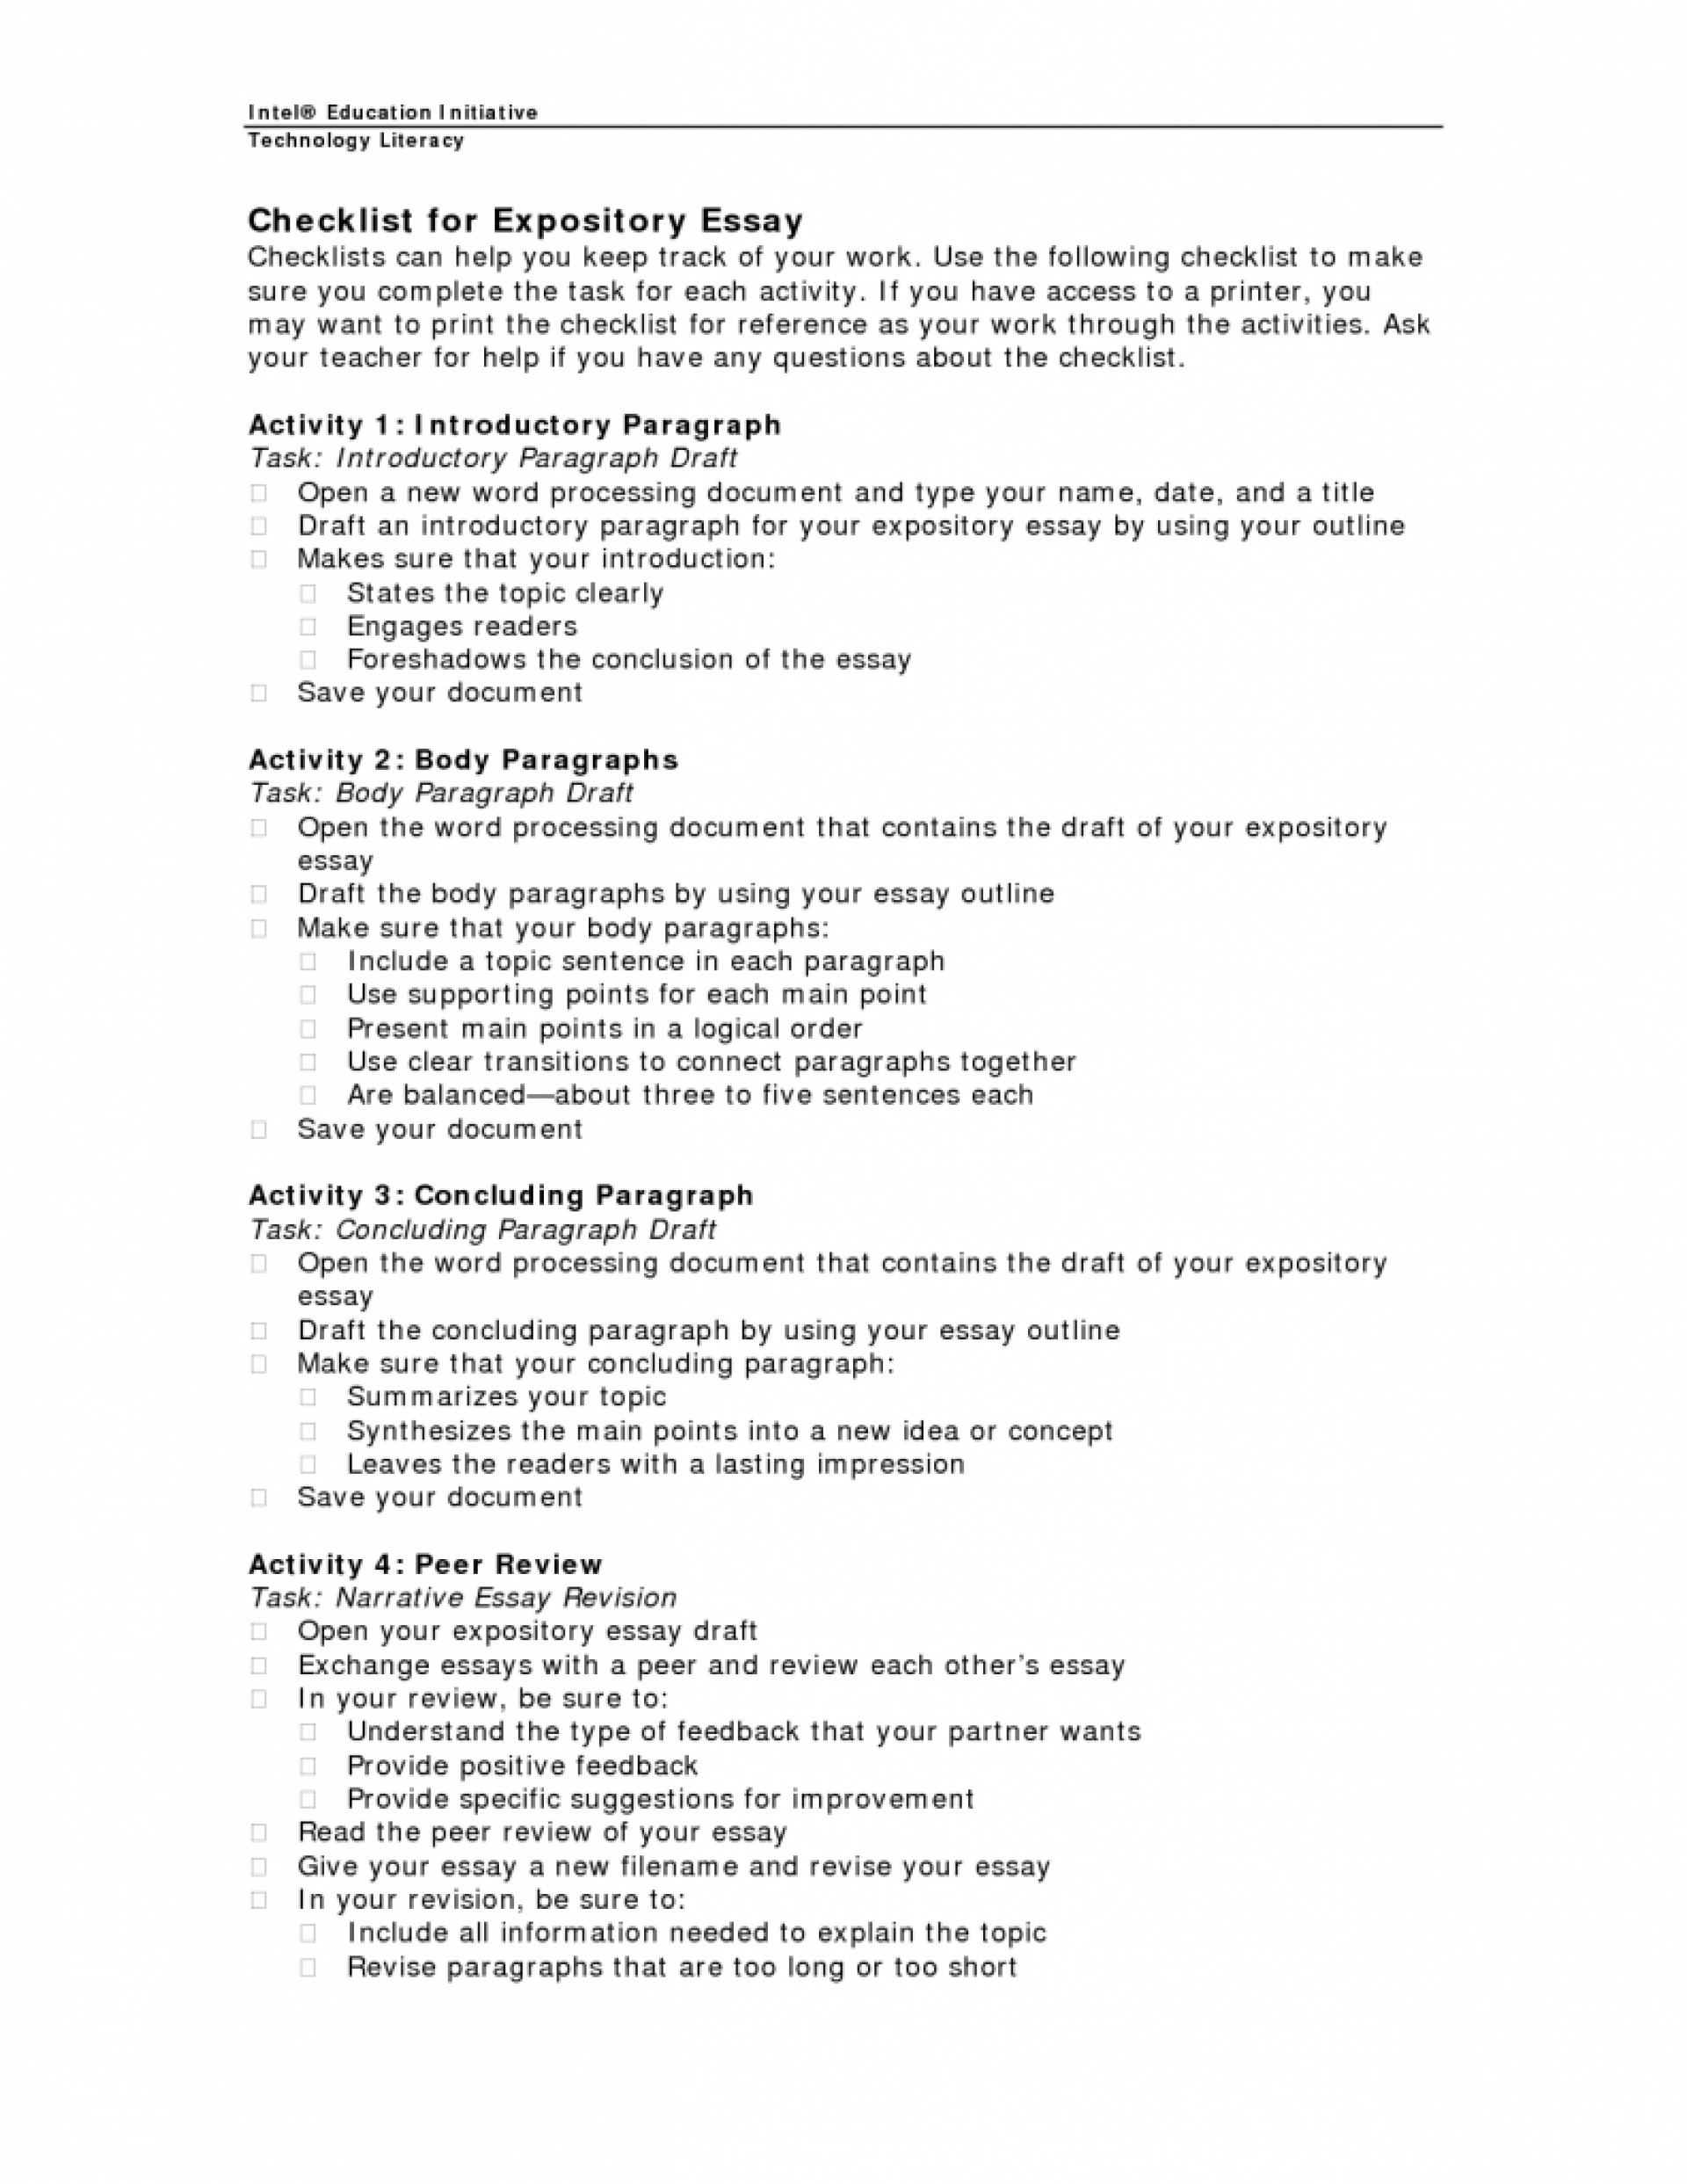 017 Expository Essay Checklist 791x1024cb Mla Research Paper Introduction Rare Paragraph 1920